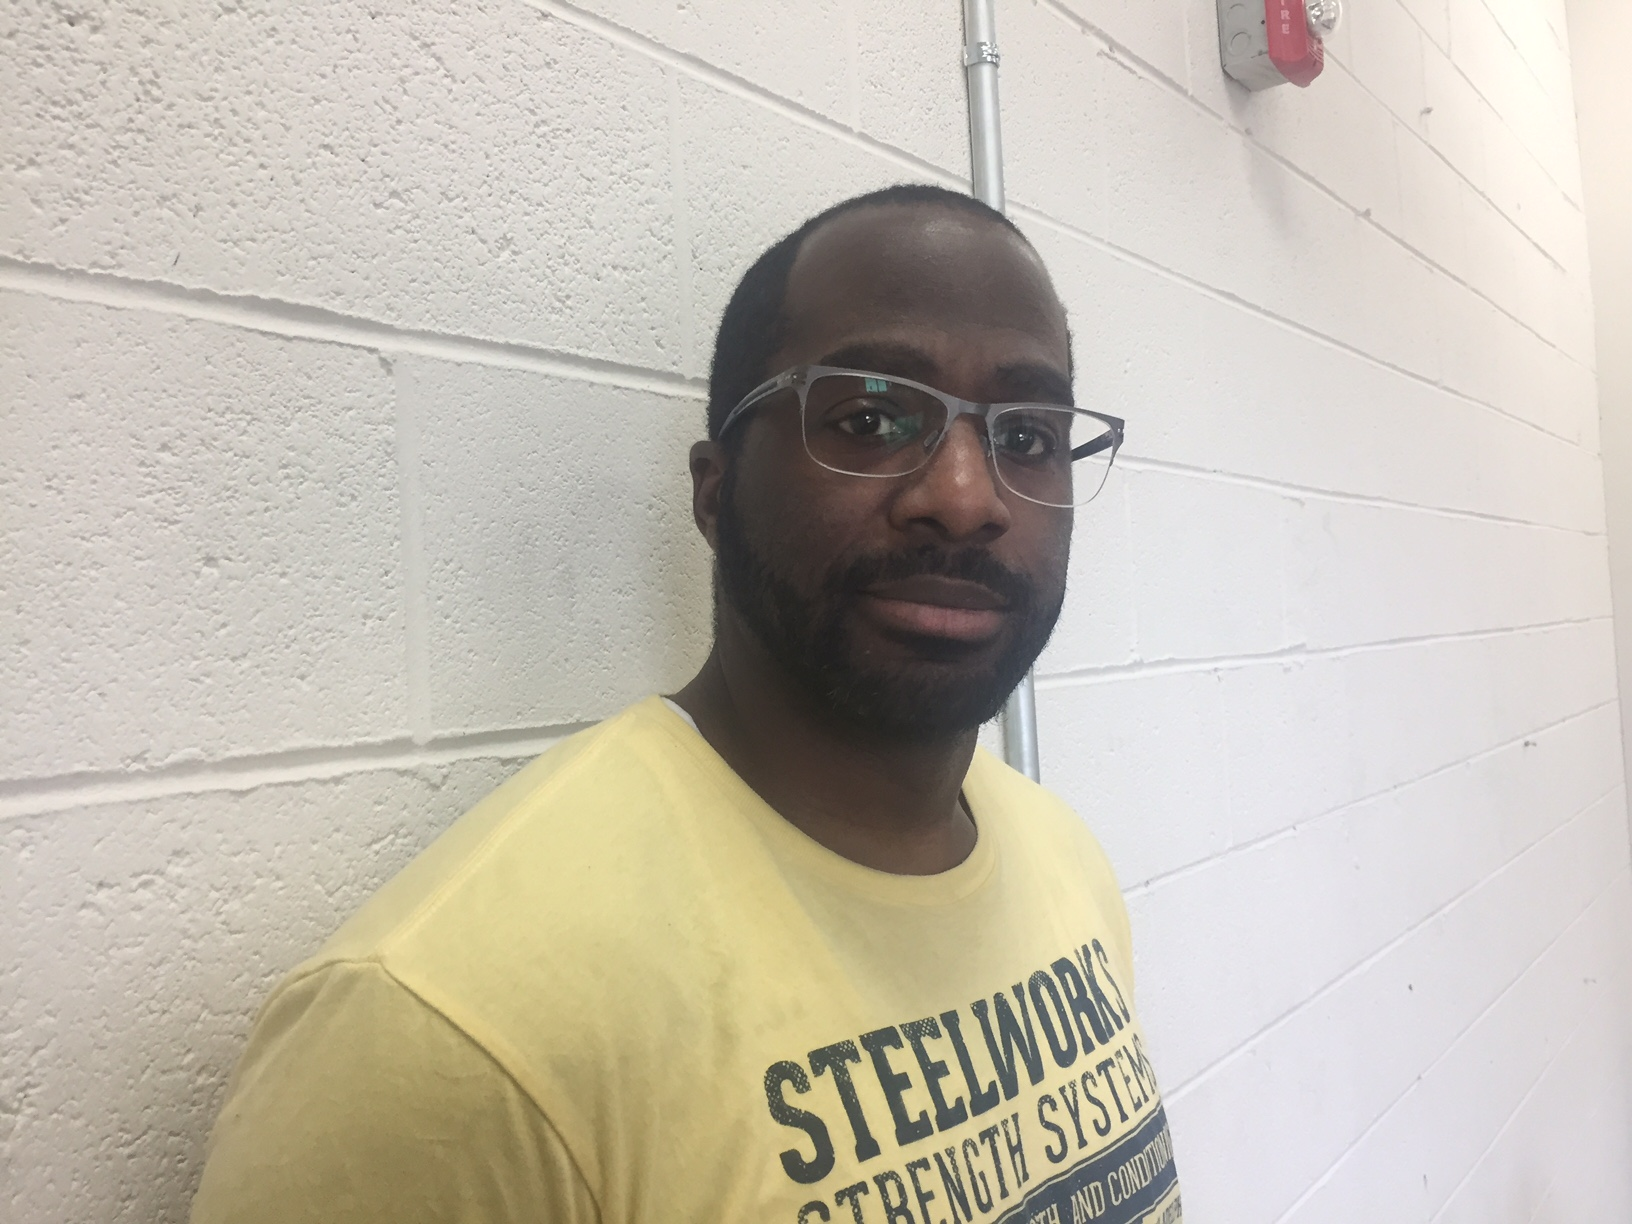 Kobie Xavier, a trainer at Steelworks Strength Systems, witnessed a recent brawl outside of the gym.